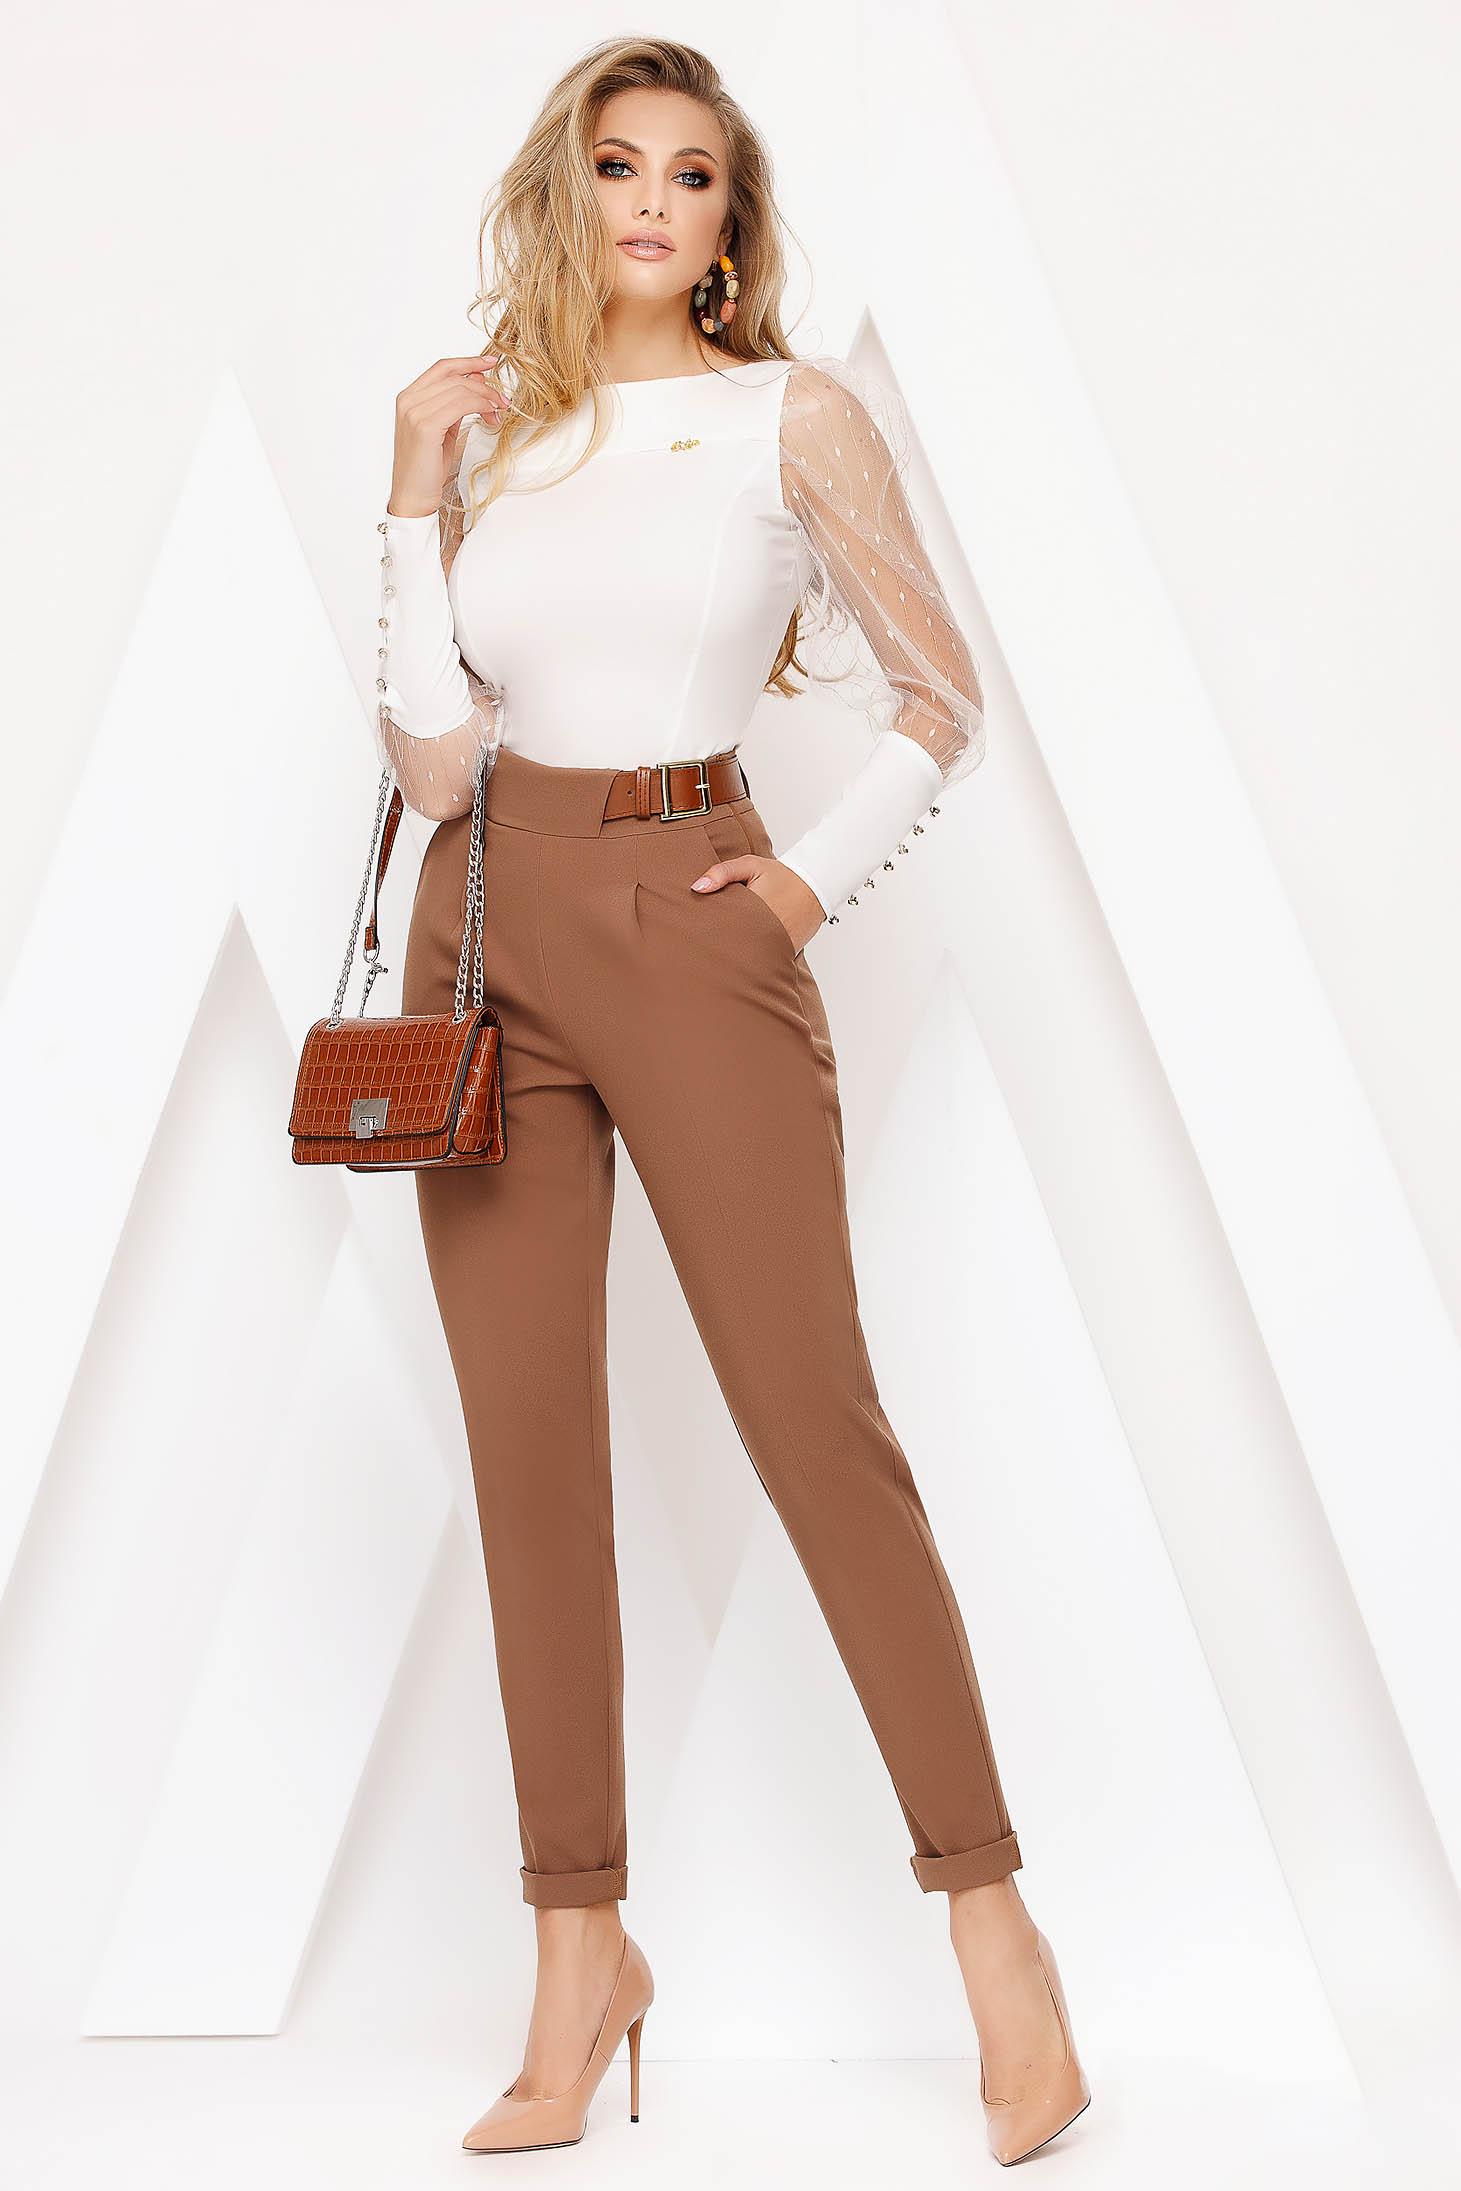 Office brown conical trousers slightly elastic fabric high waisted